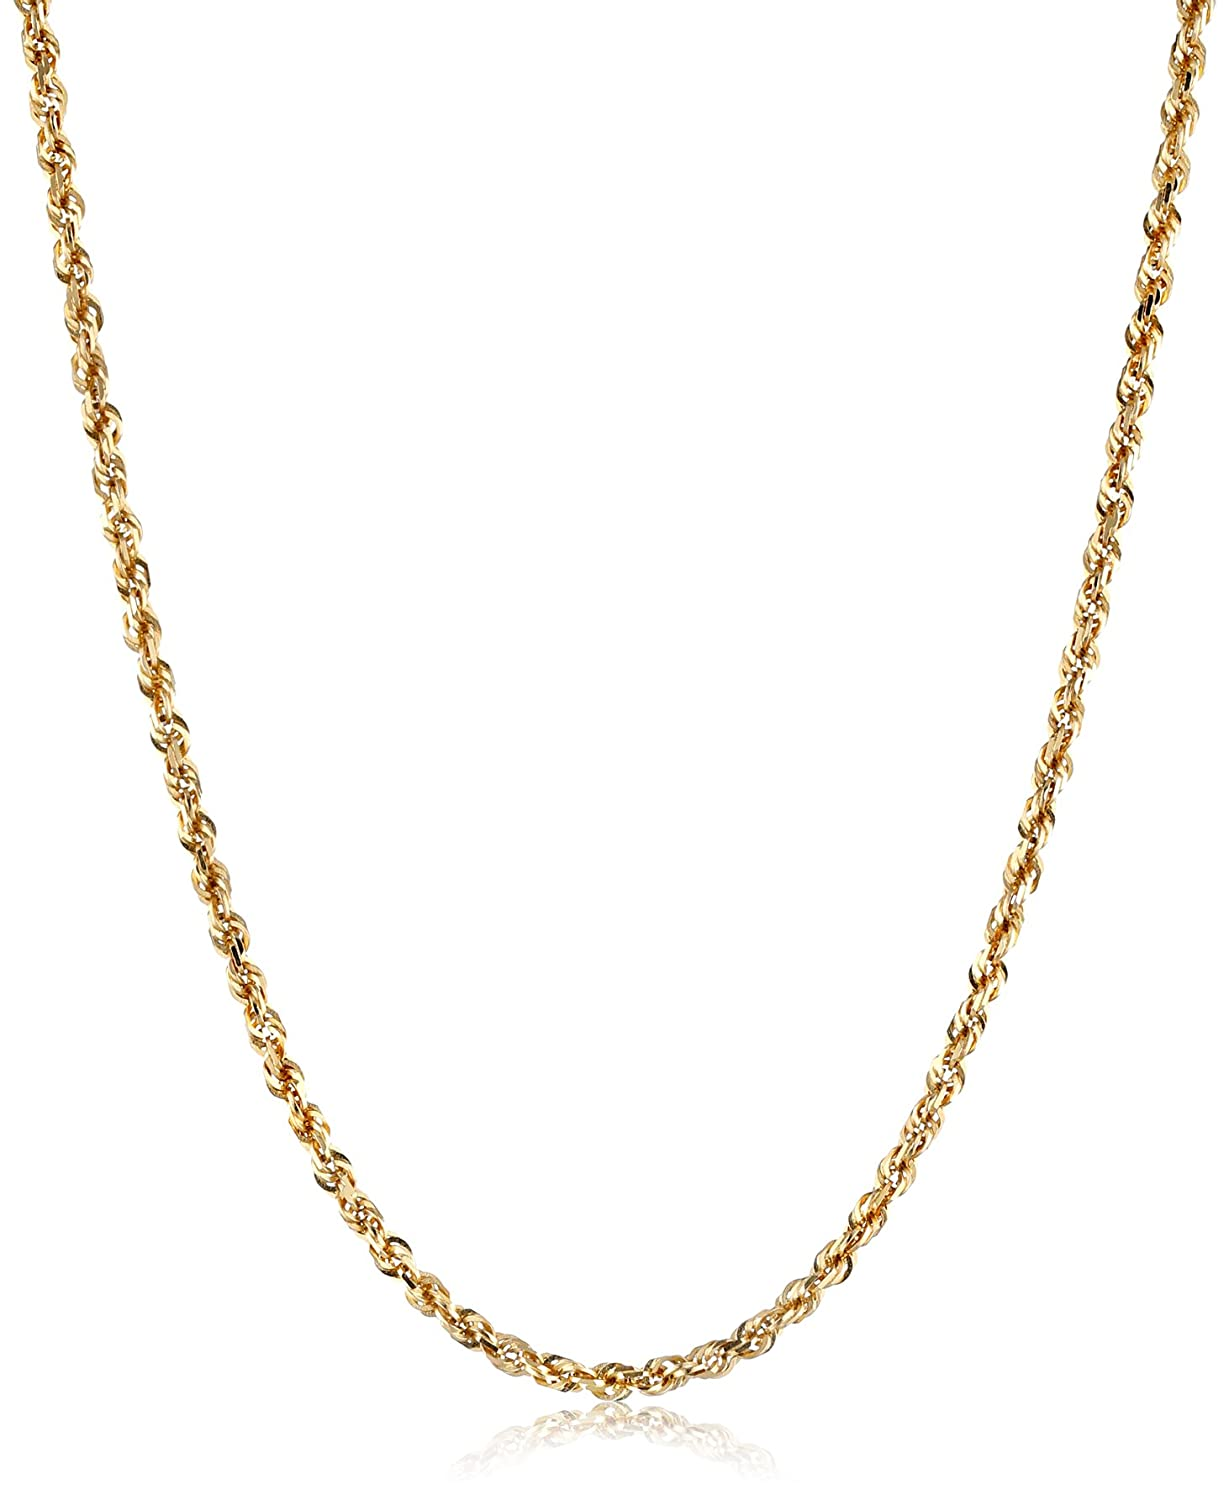 pin necklace for gold us chains jeweast pure men unisex women